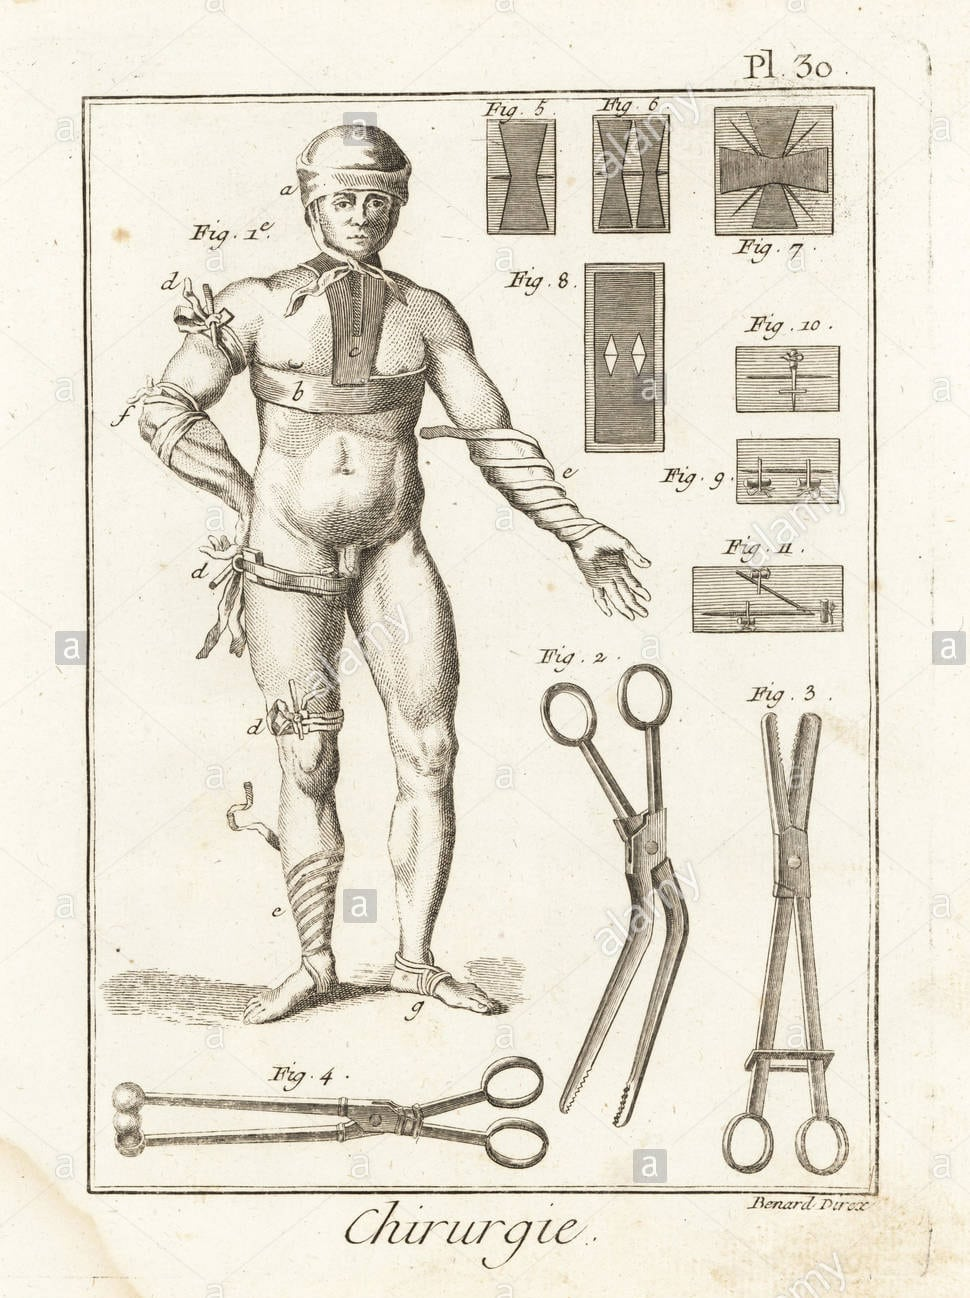 18 th century bandage sketch